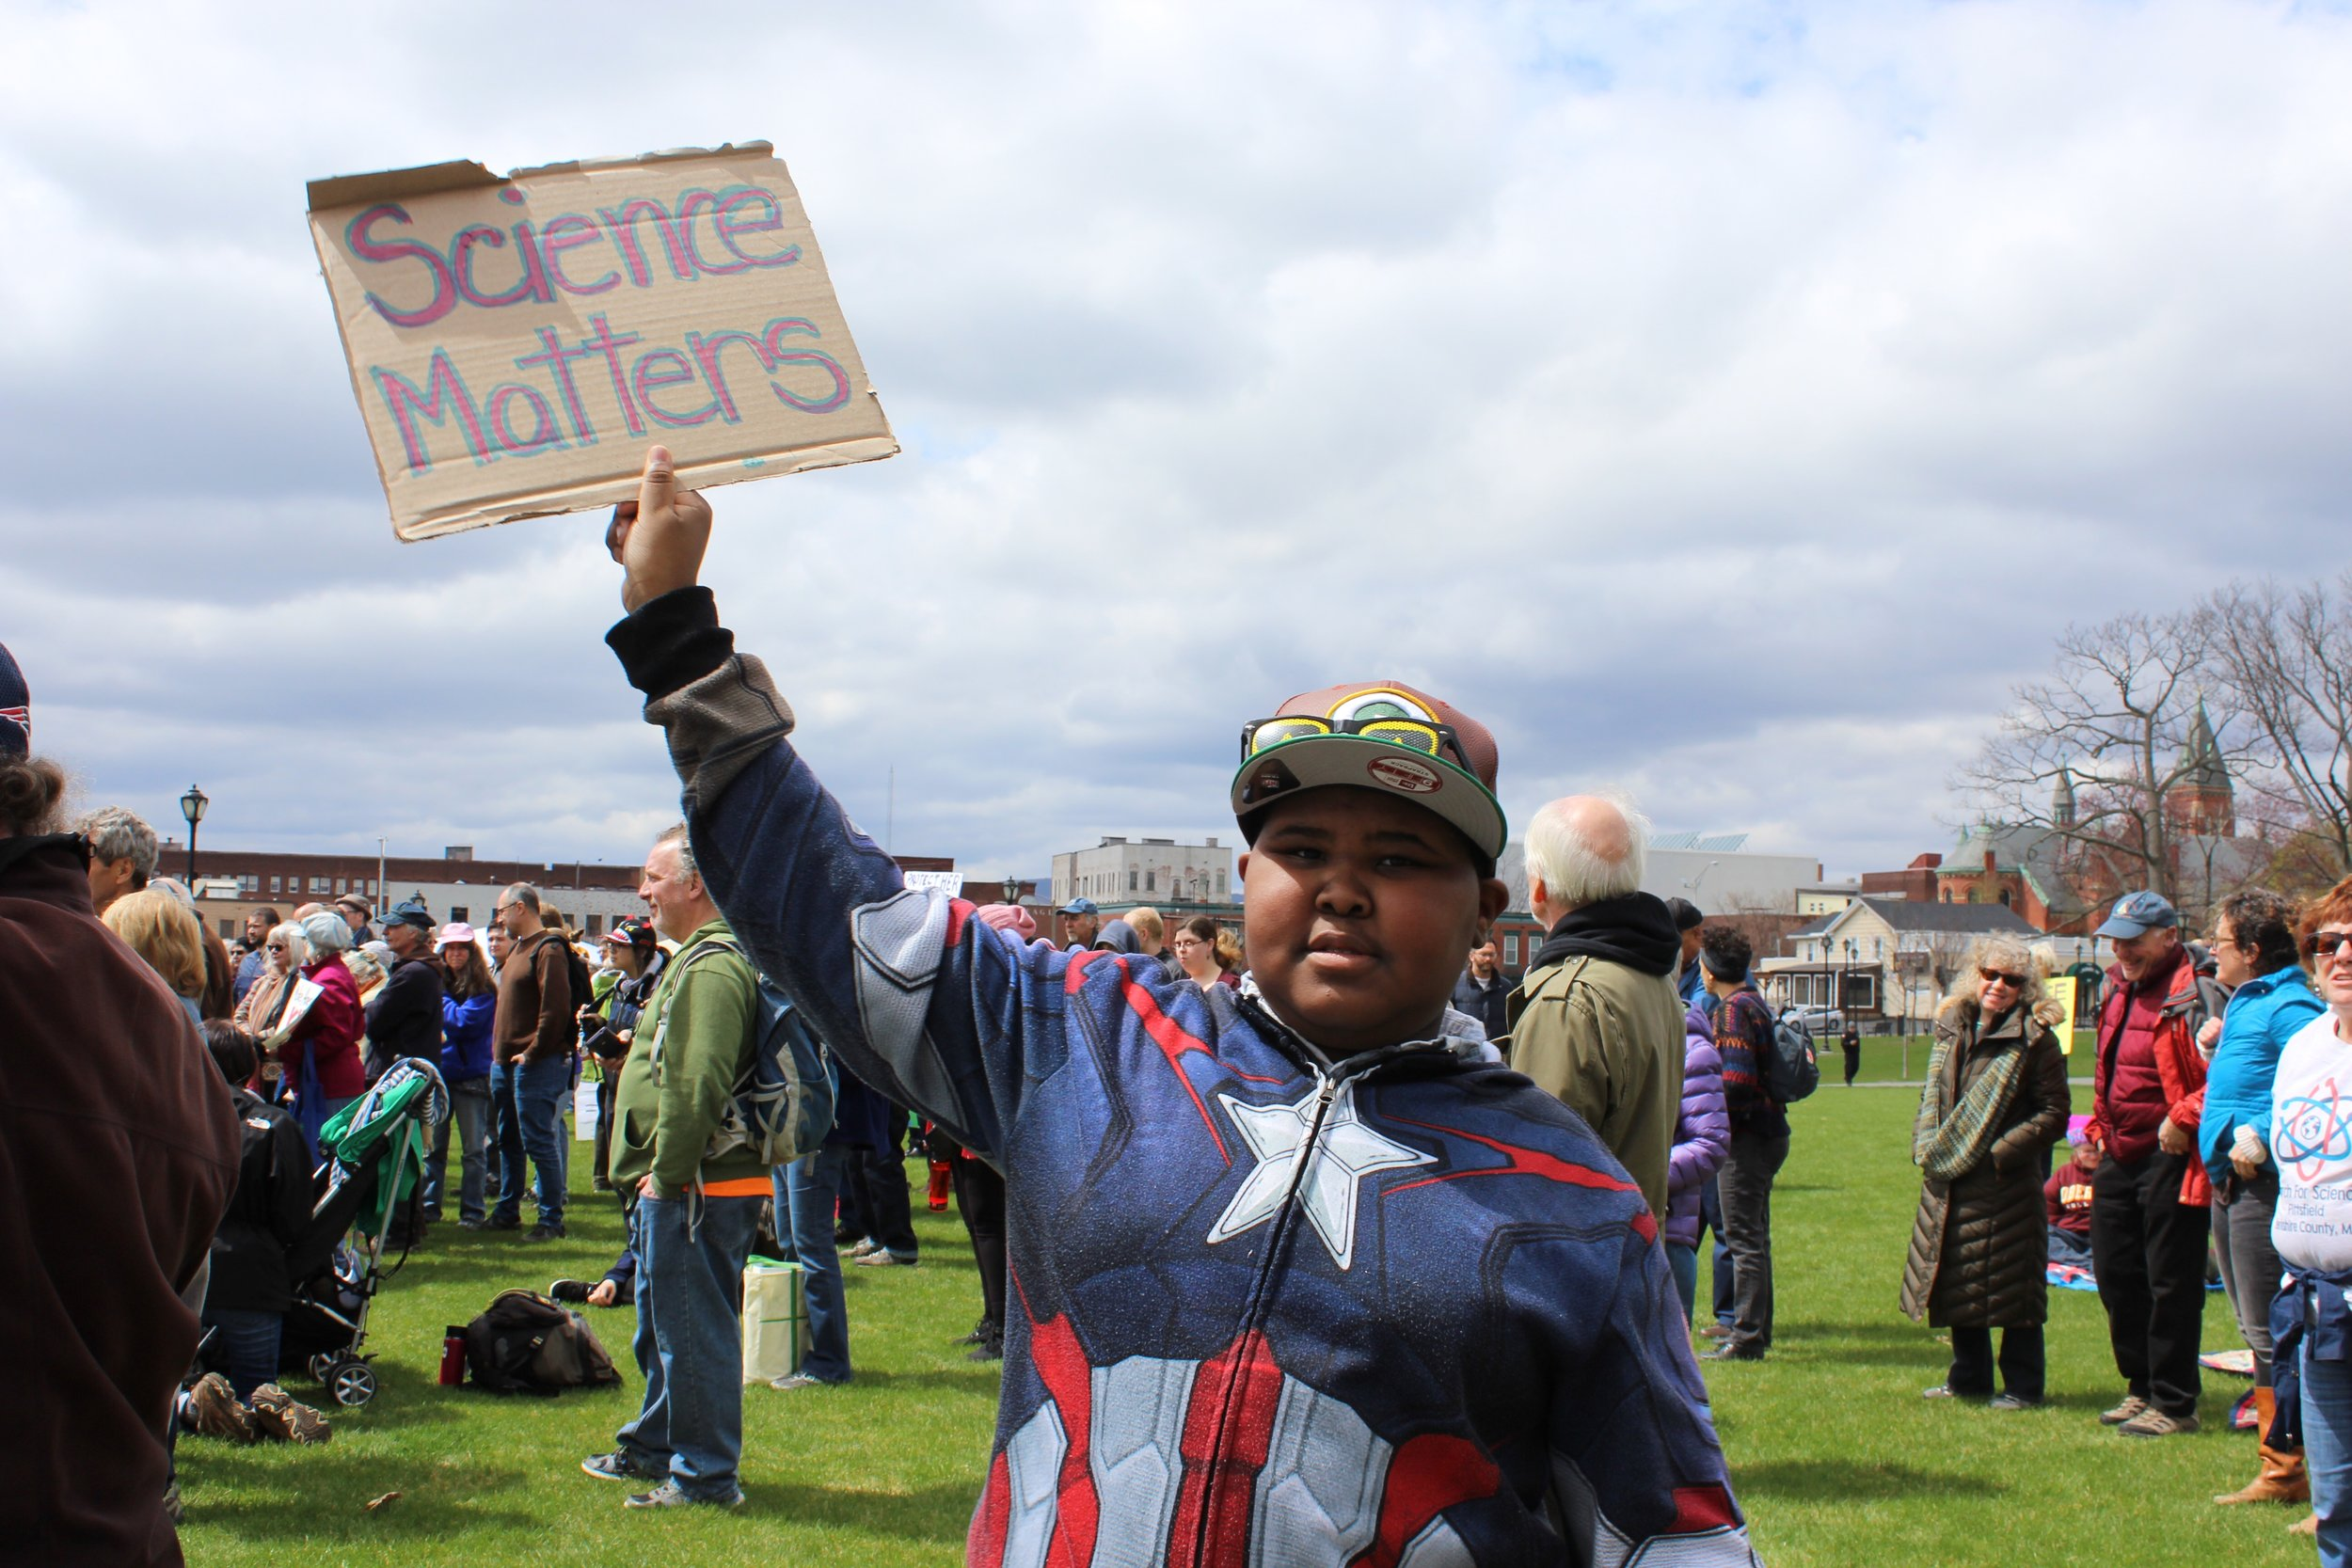 Amir Young, 11, was one of nearly 400 people who showed up at Pittsfield's First Street Common April 22 to support science and fact-based policies.